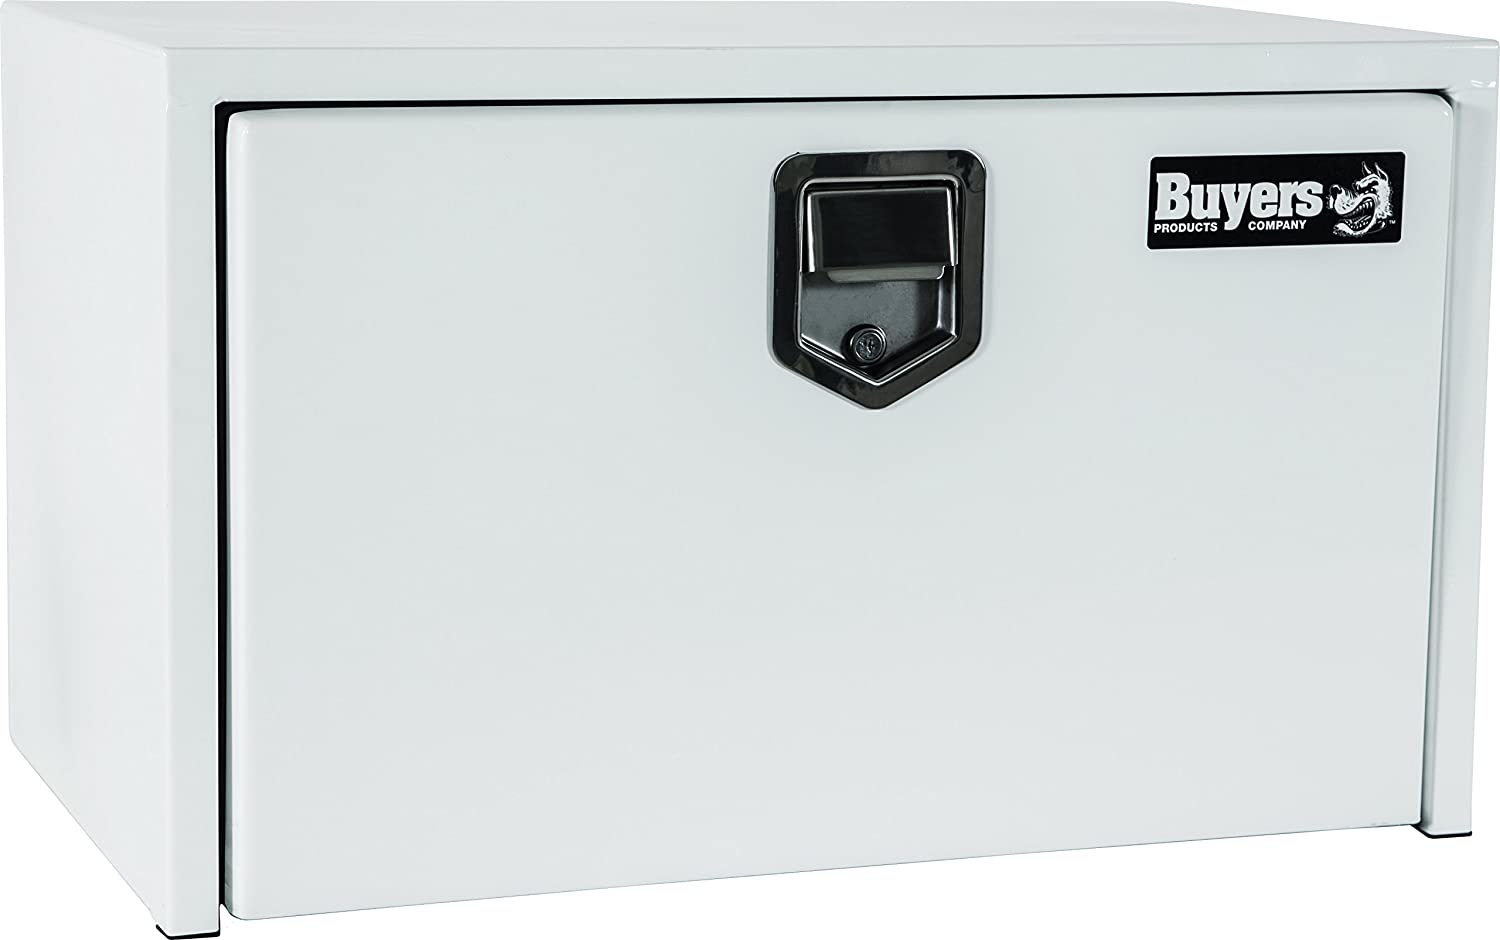 Buyers Products White Steel Underbody Truck Box w// Paddle Latch 18x18x48 Inch